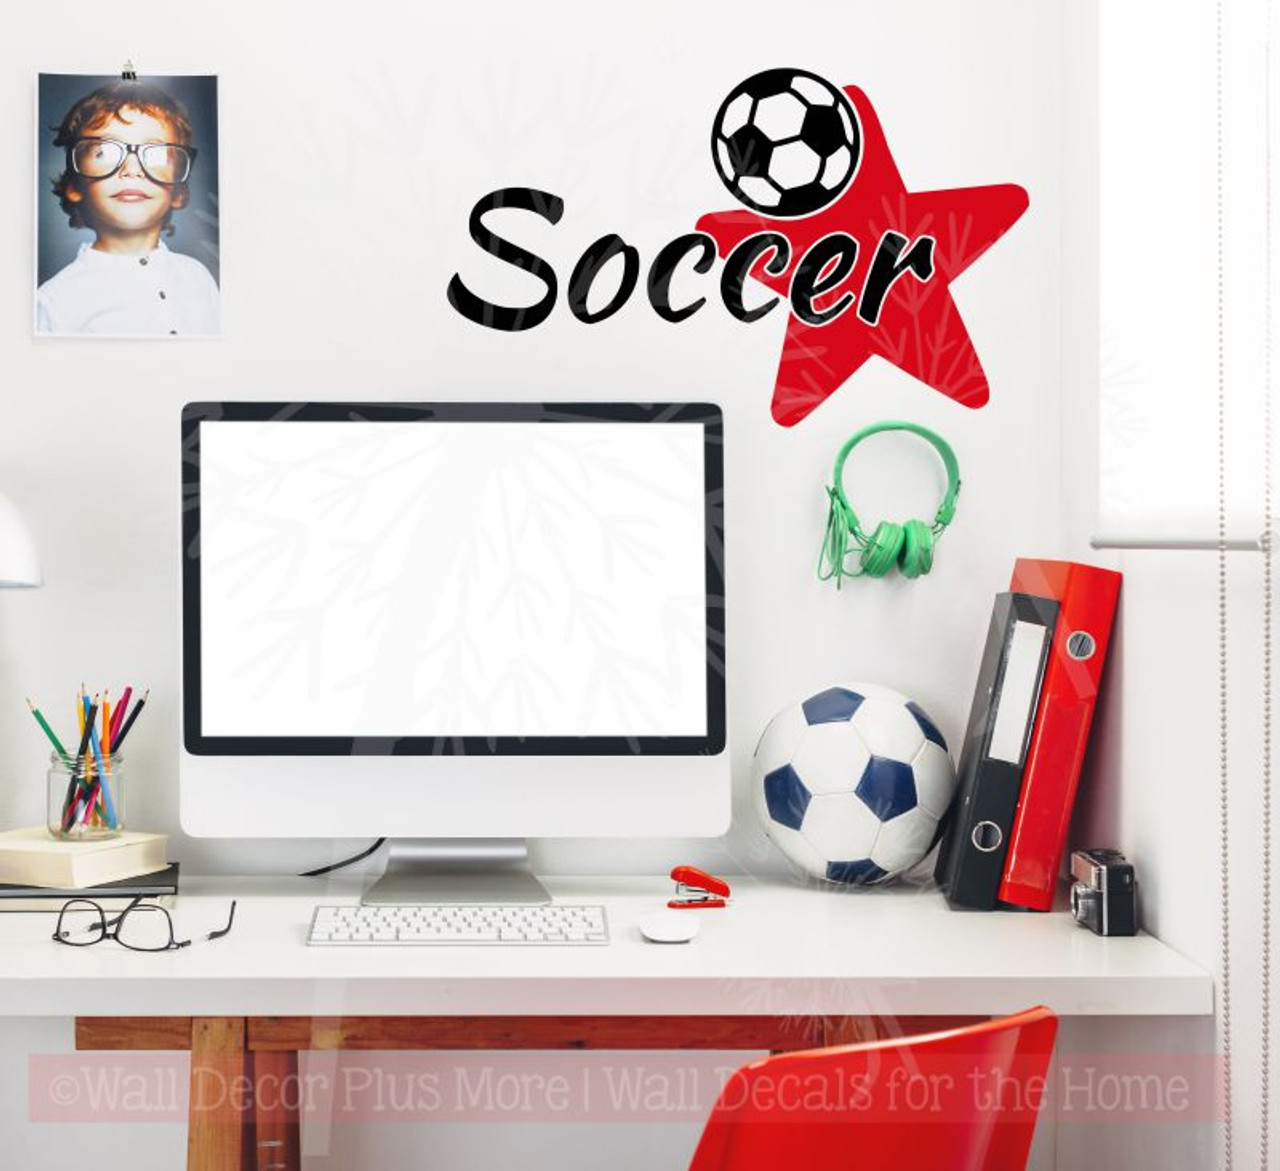 Soccer with Star Vinyl Lettering Sports Decals Wall Stickers Teen Bedroom Decor  sc 1 st  Wall Decor Plus More & Soccer with Star Vinyl Lettering Sports Decals Wall Stickers Teen ...